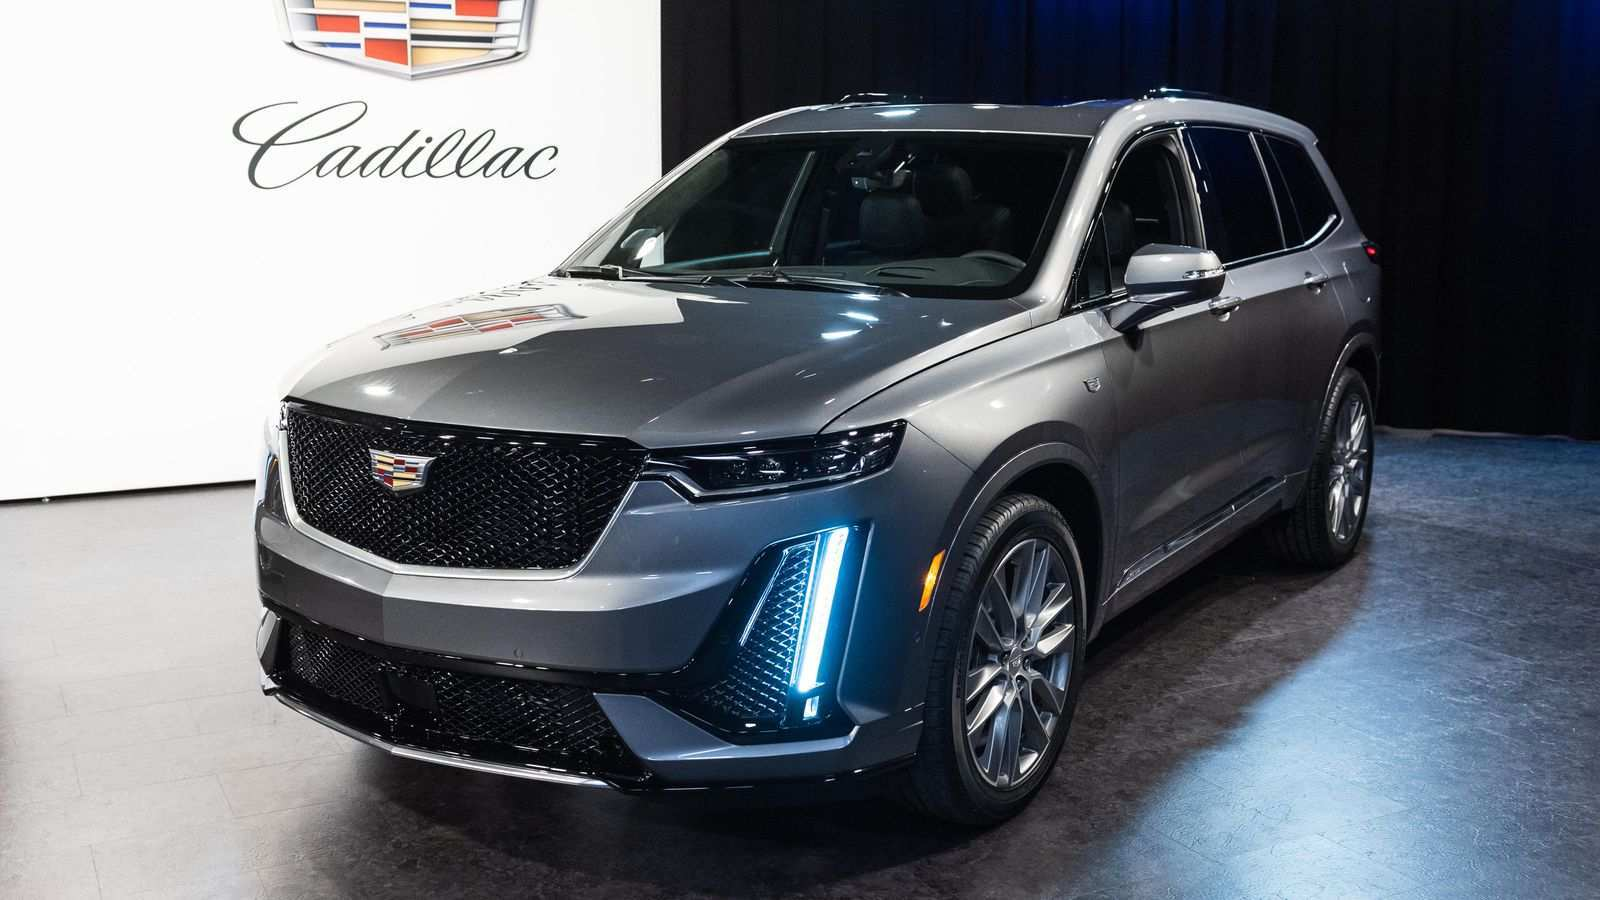 22 A Cadillac Xt6 2020 Review Spesification